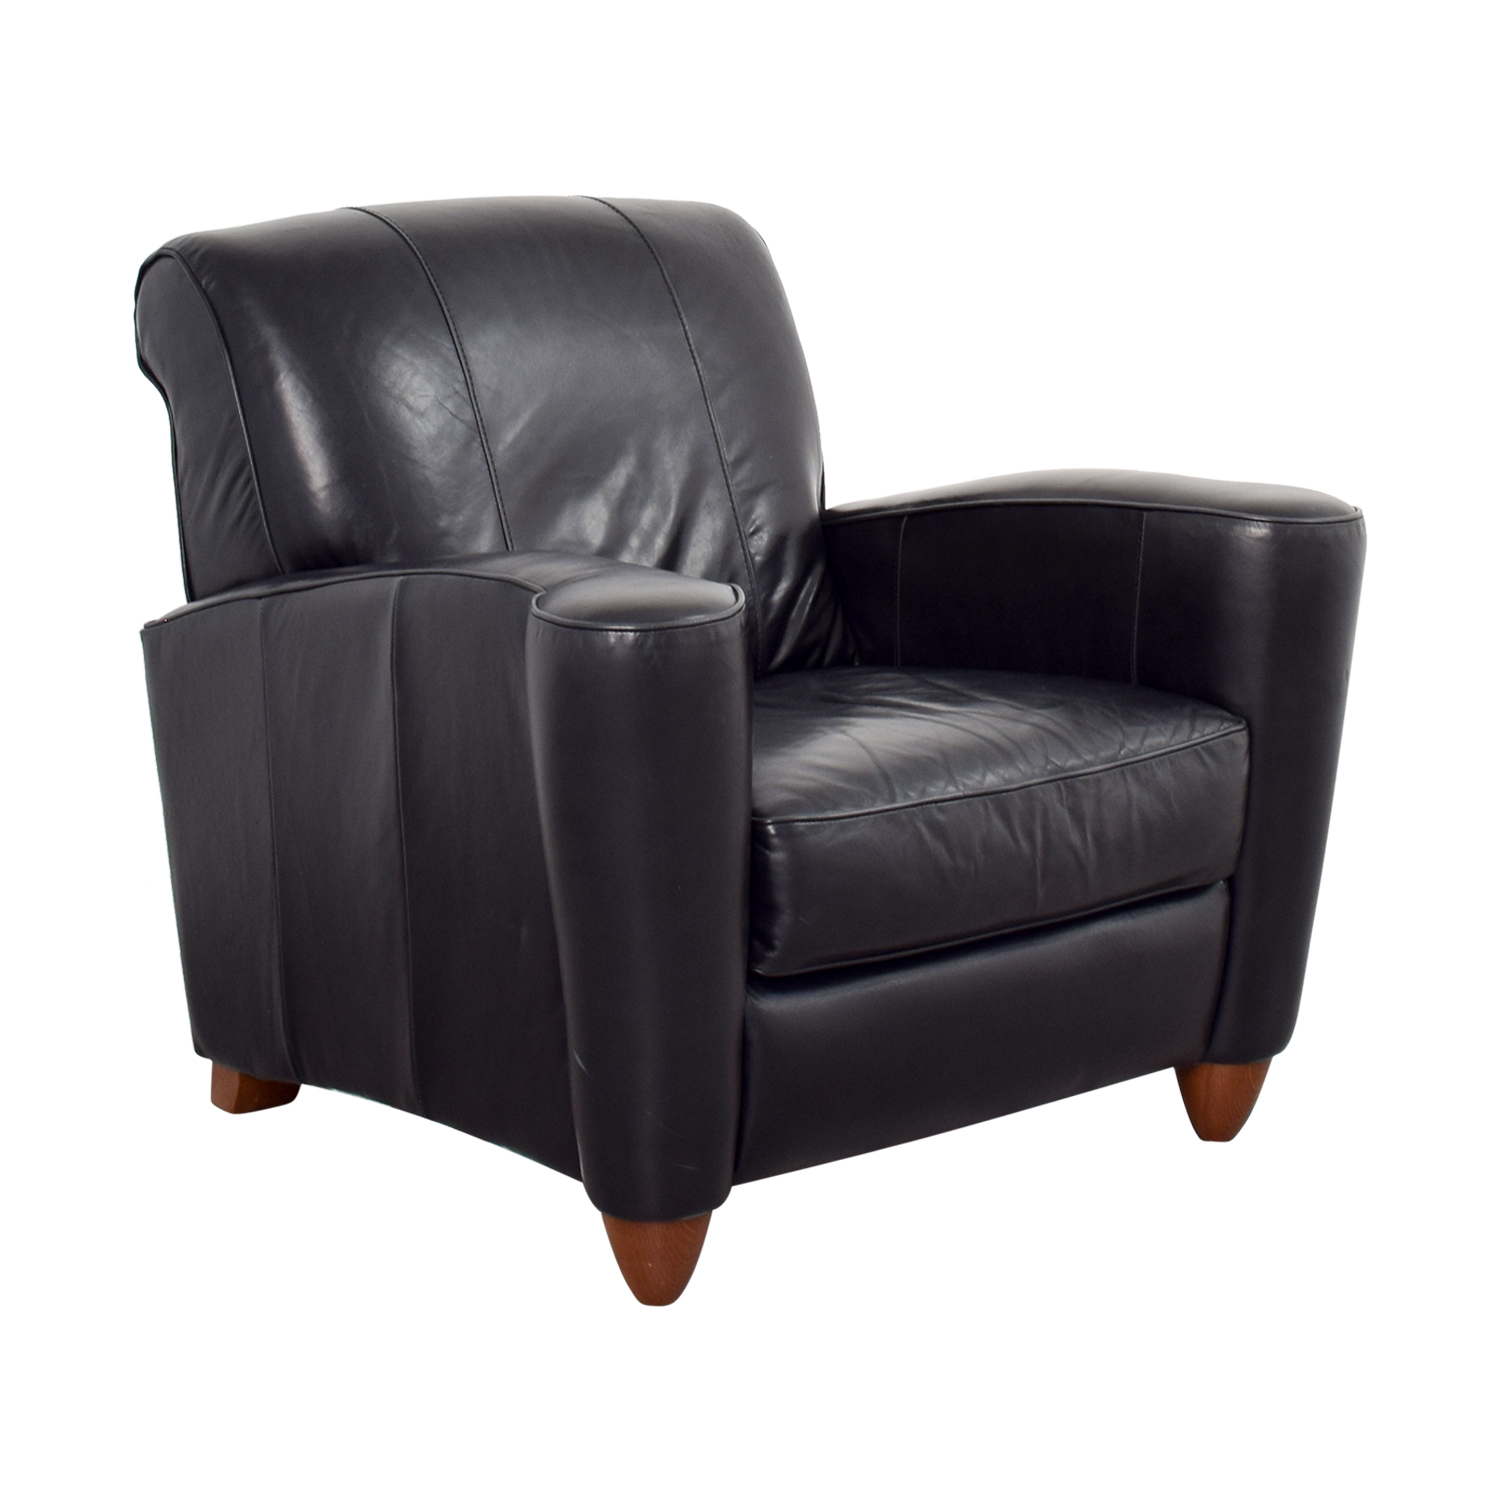 Best Reading Chair 76 Off Leather Library Reading Chair Chairs